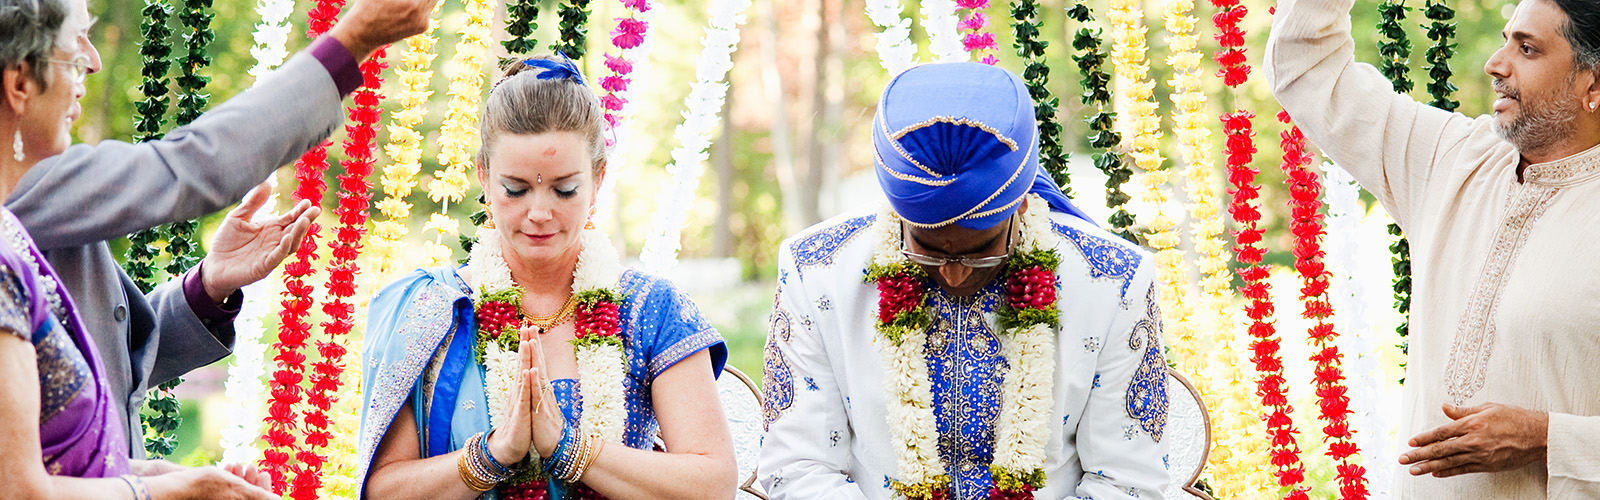 Portland Wedding Photographer Reviews - Heidi and Navin's Hindu Wedding at Bridal Veil Lakes, OR